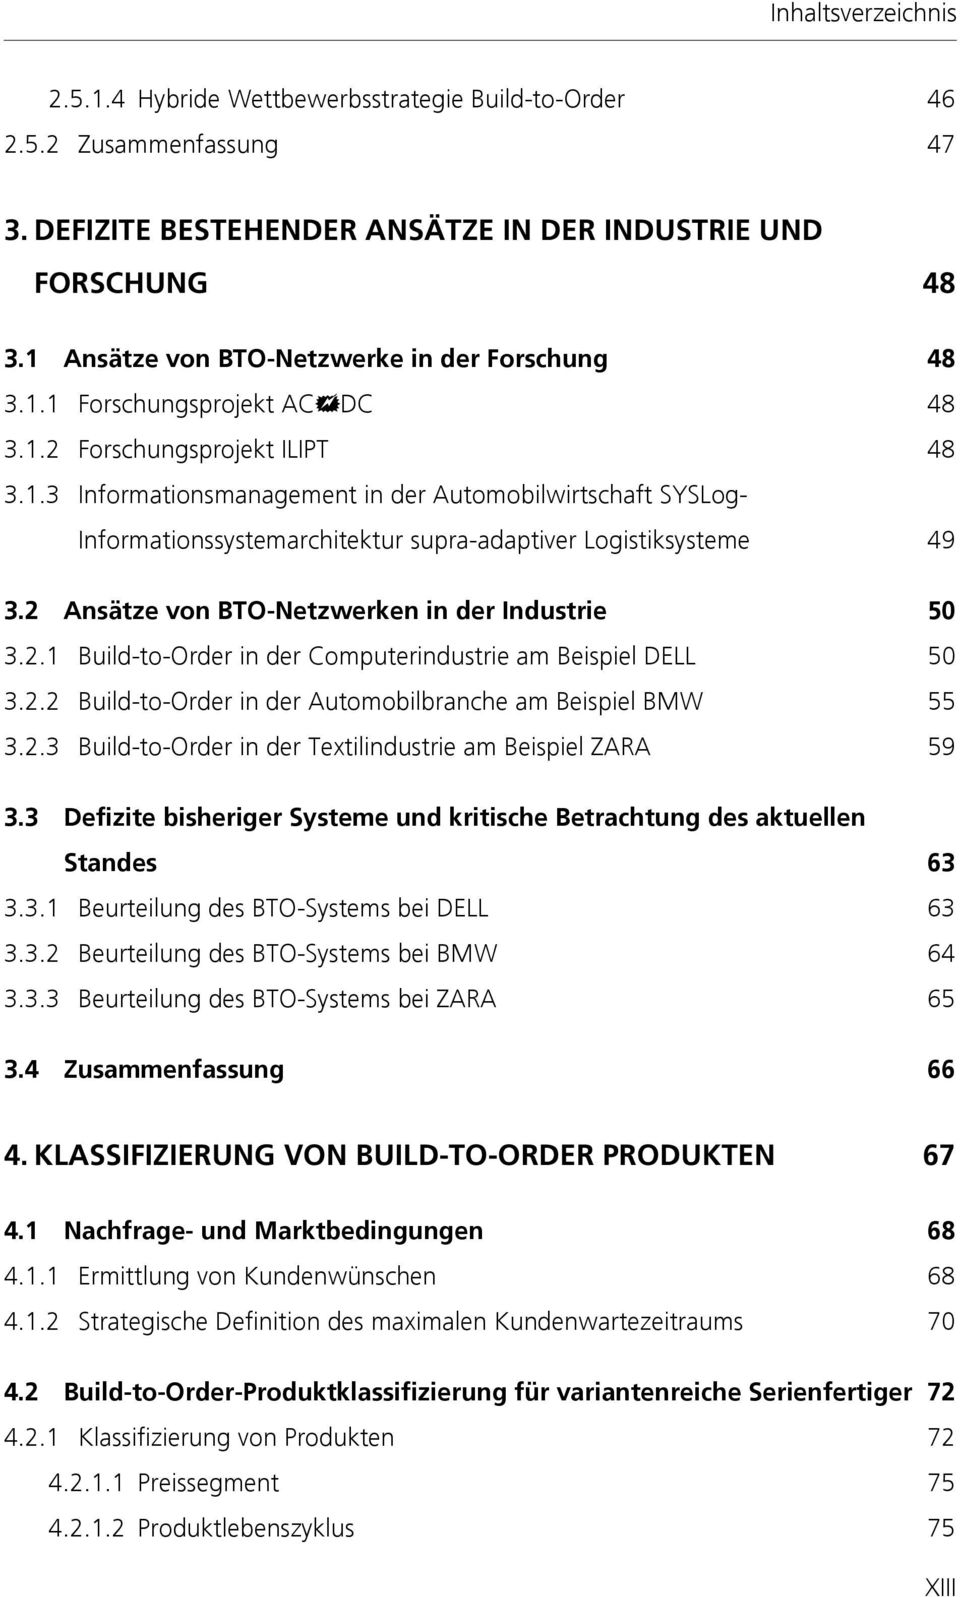 2 Ansätze von BTO-Netzwerken in der Industrie 50 3.2.1 Build-to-Order in der Computerindustrie am Beispiel DELL 50 3.2.2 Build-to-Order in der Automobilbranche am Beispiel BMW 55 3.2.3 Build-to-Order in der Textilindustrie am Beispiel ZARA 59 3.